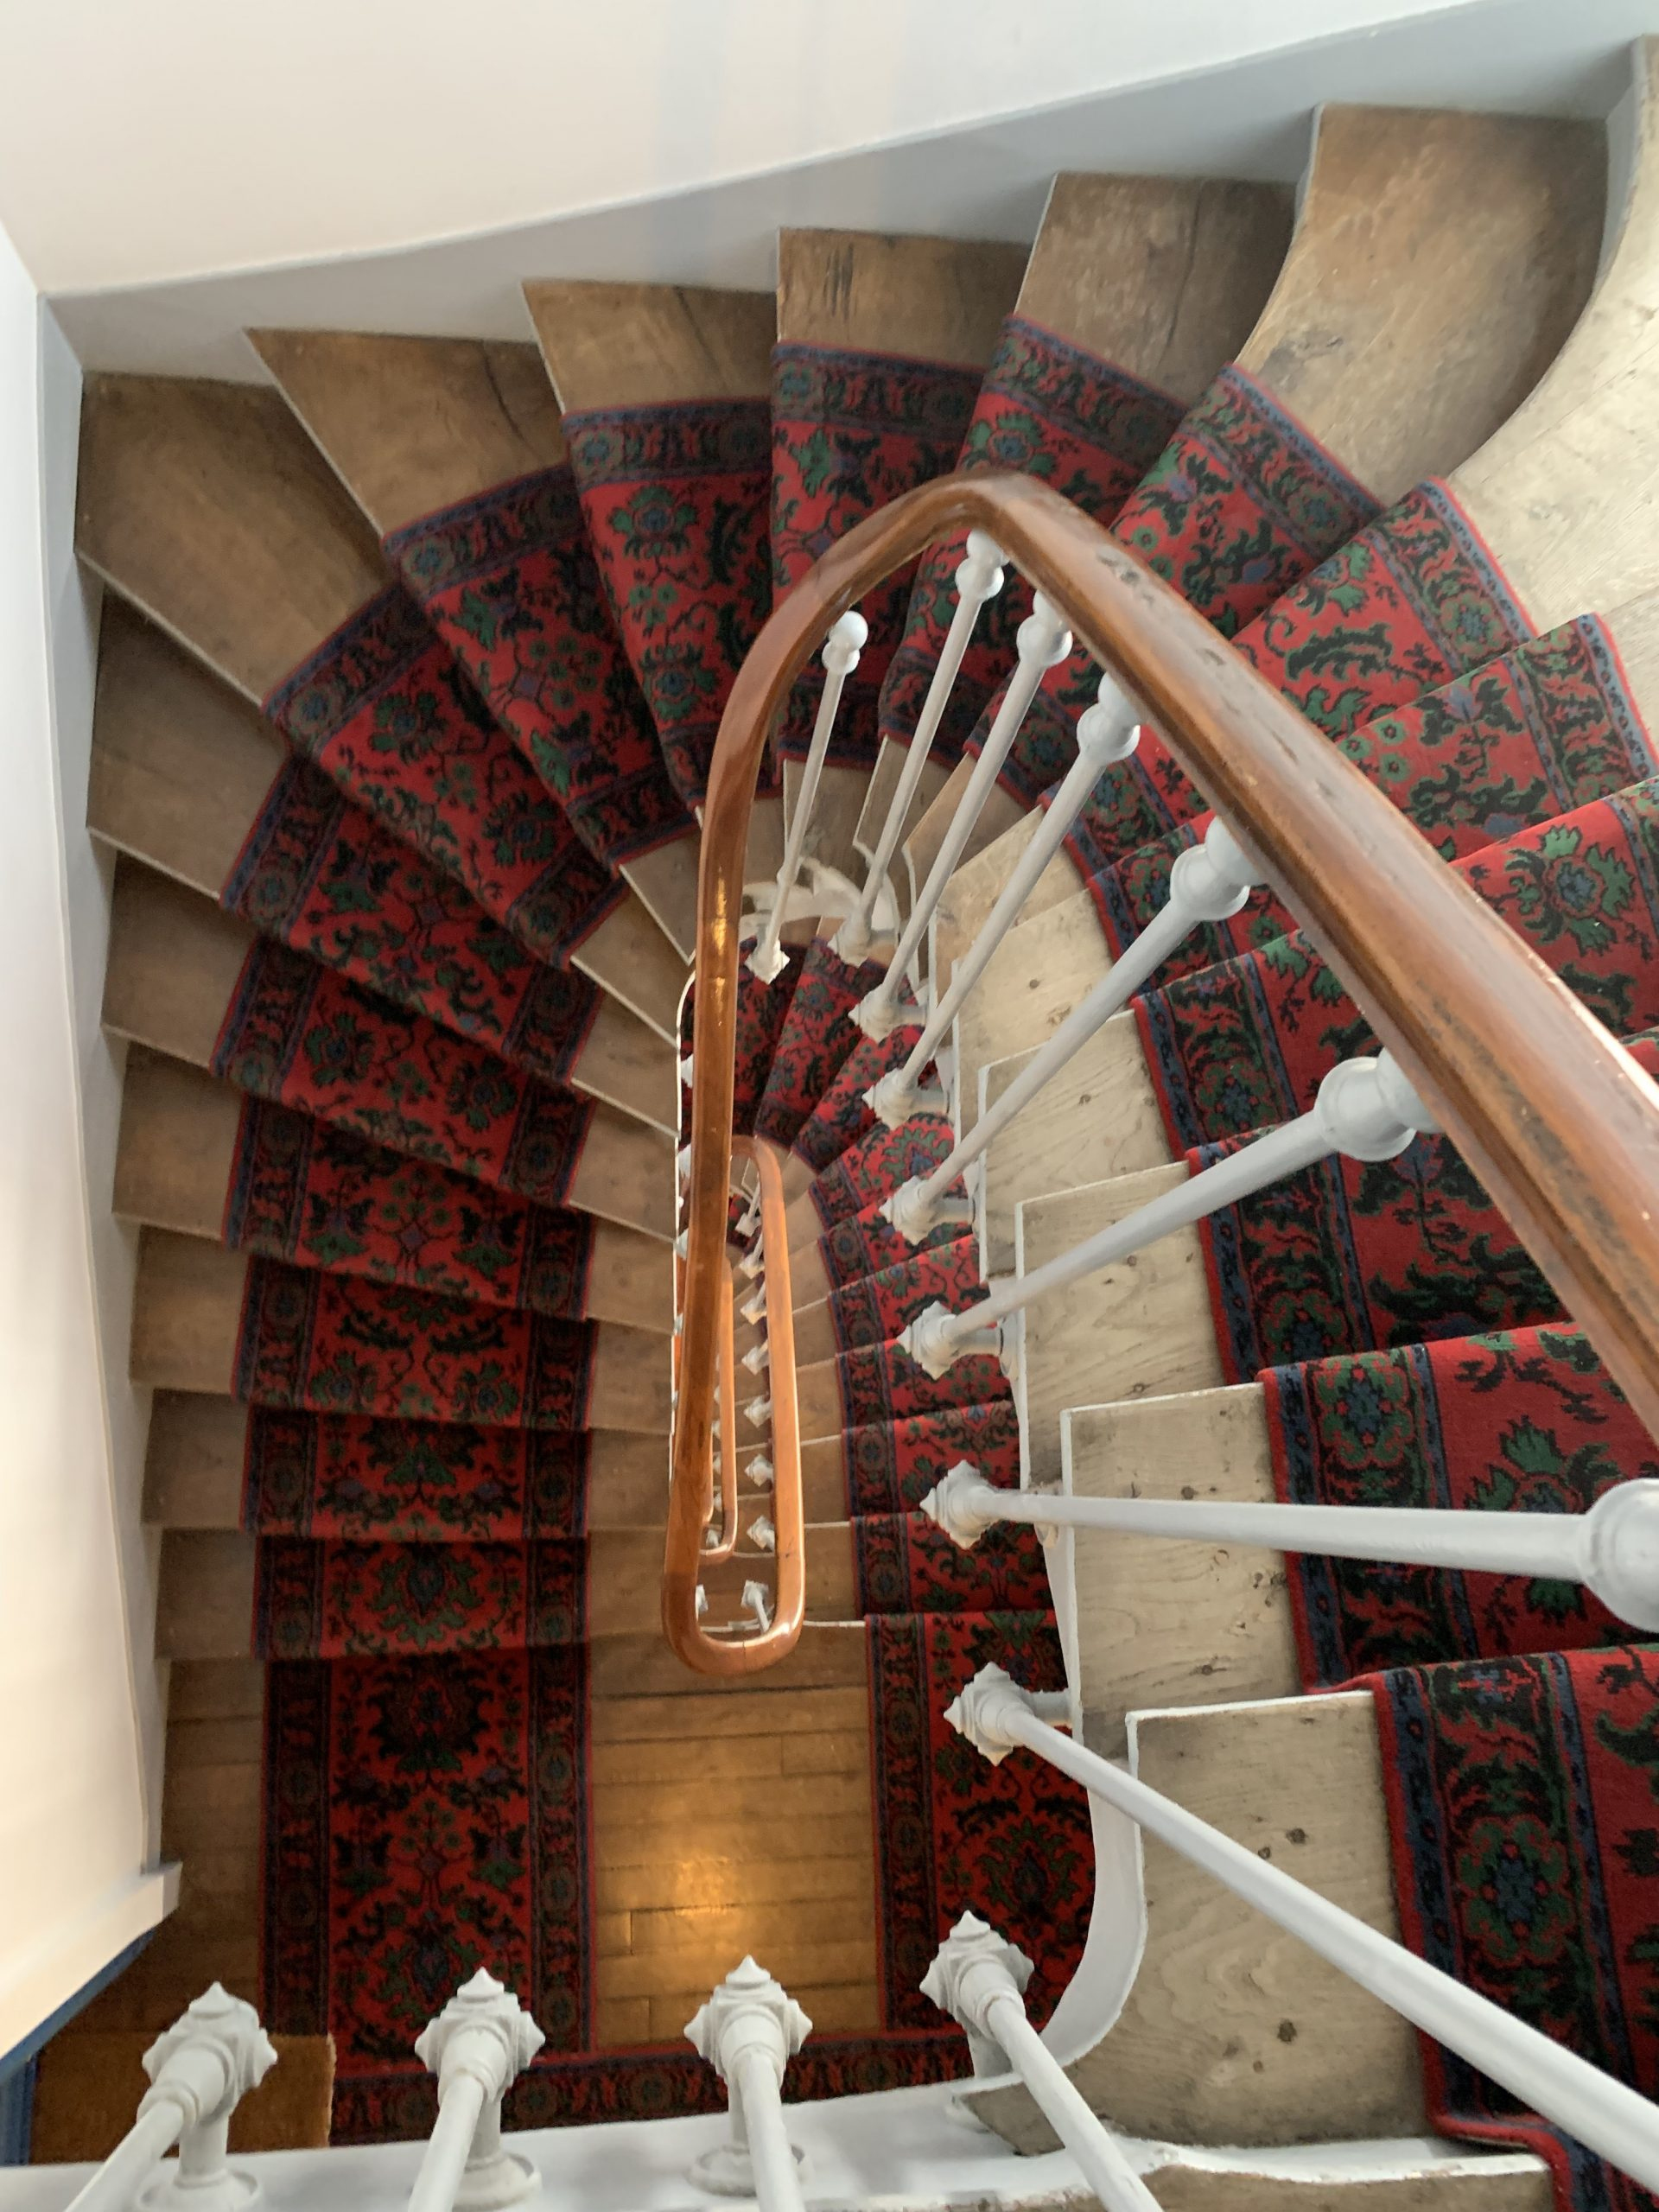 3 things that you should know about Paris' stairs.